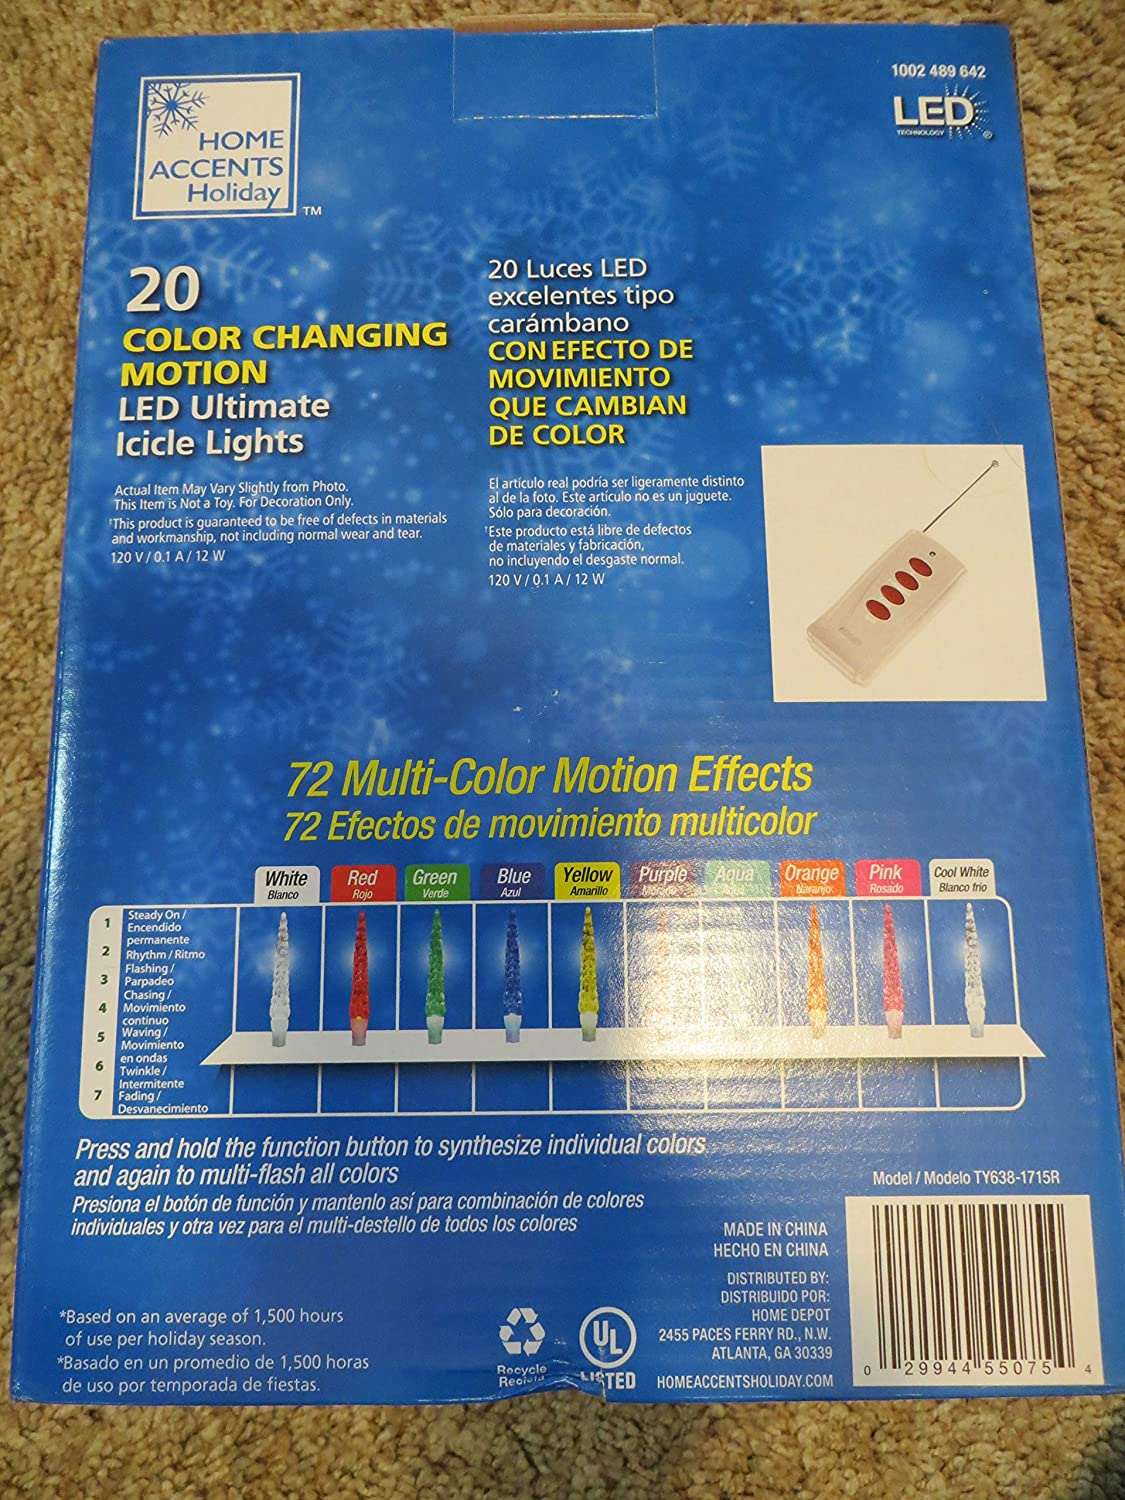 Amazon.com: 20 LED Motion Ultimate Icicle Lights - Color Changing: Musical Instruments